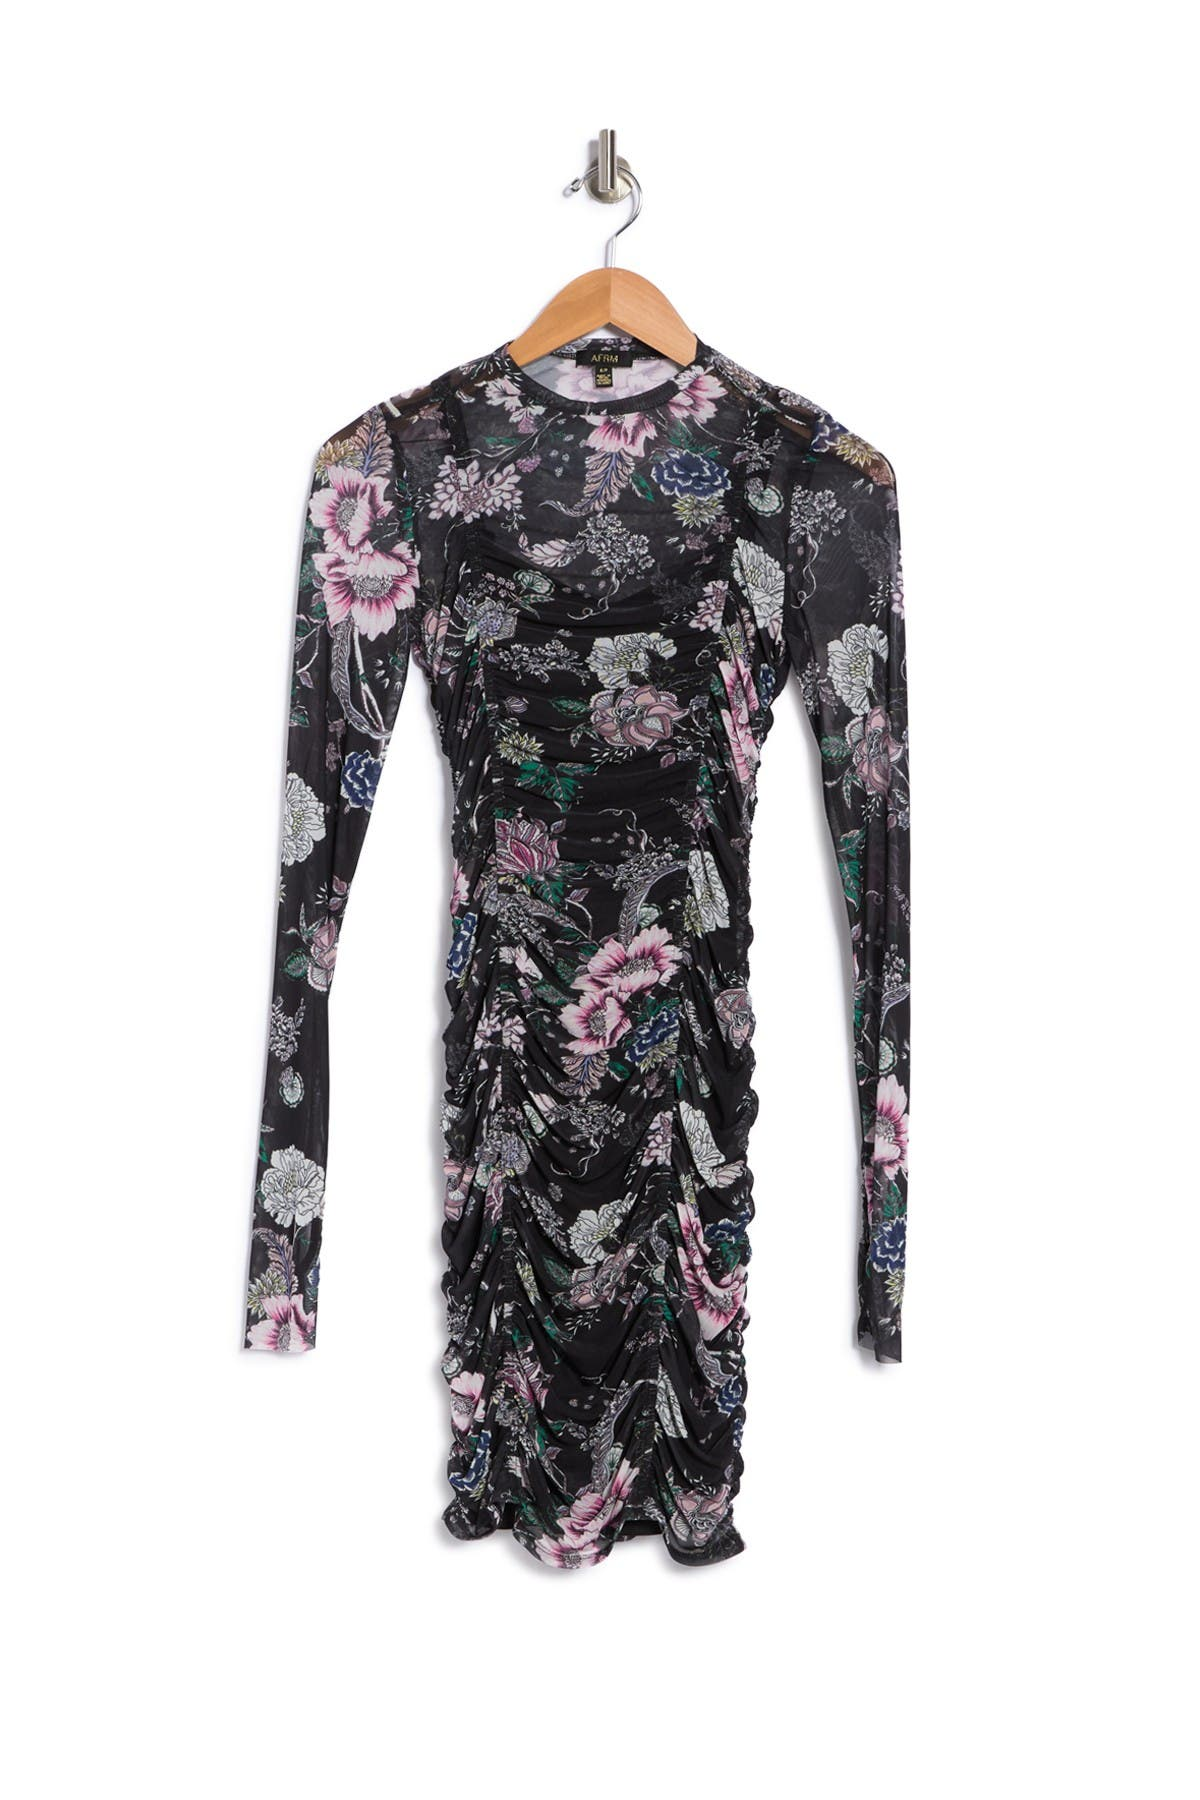 Image of AFRM Blair Ruched Floral Bodycon Dress